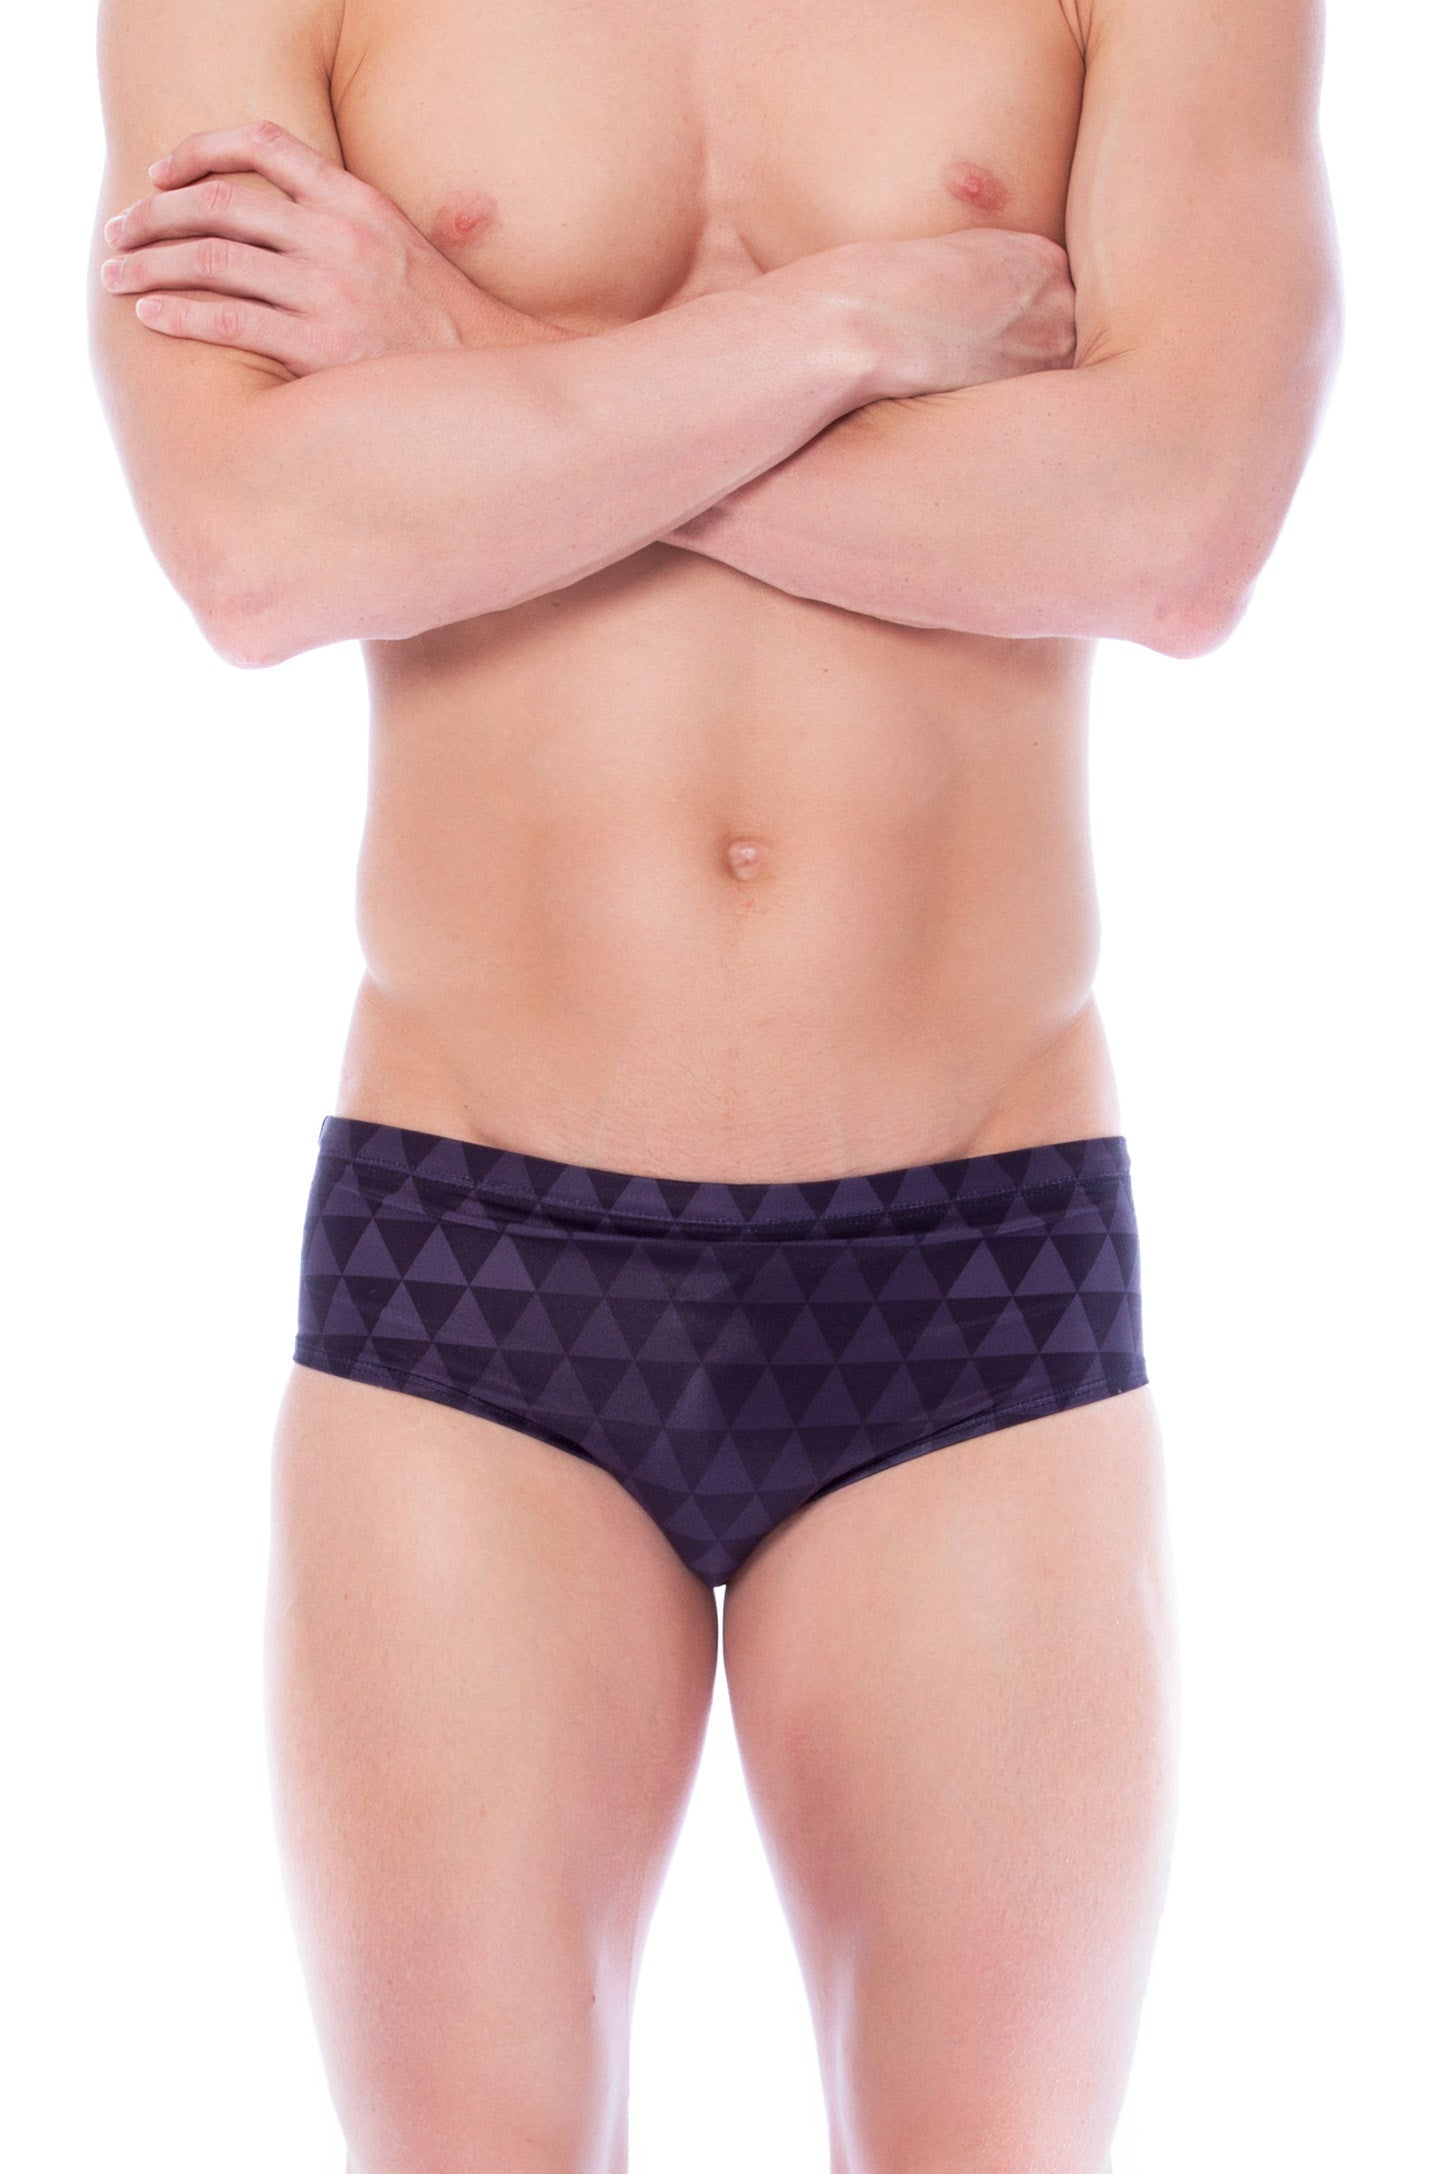 Carbon - Mens M Only Men's Briefs - Shop Zealous Training Swimwear